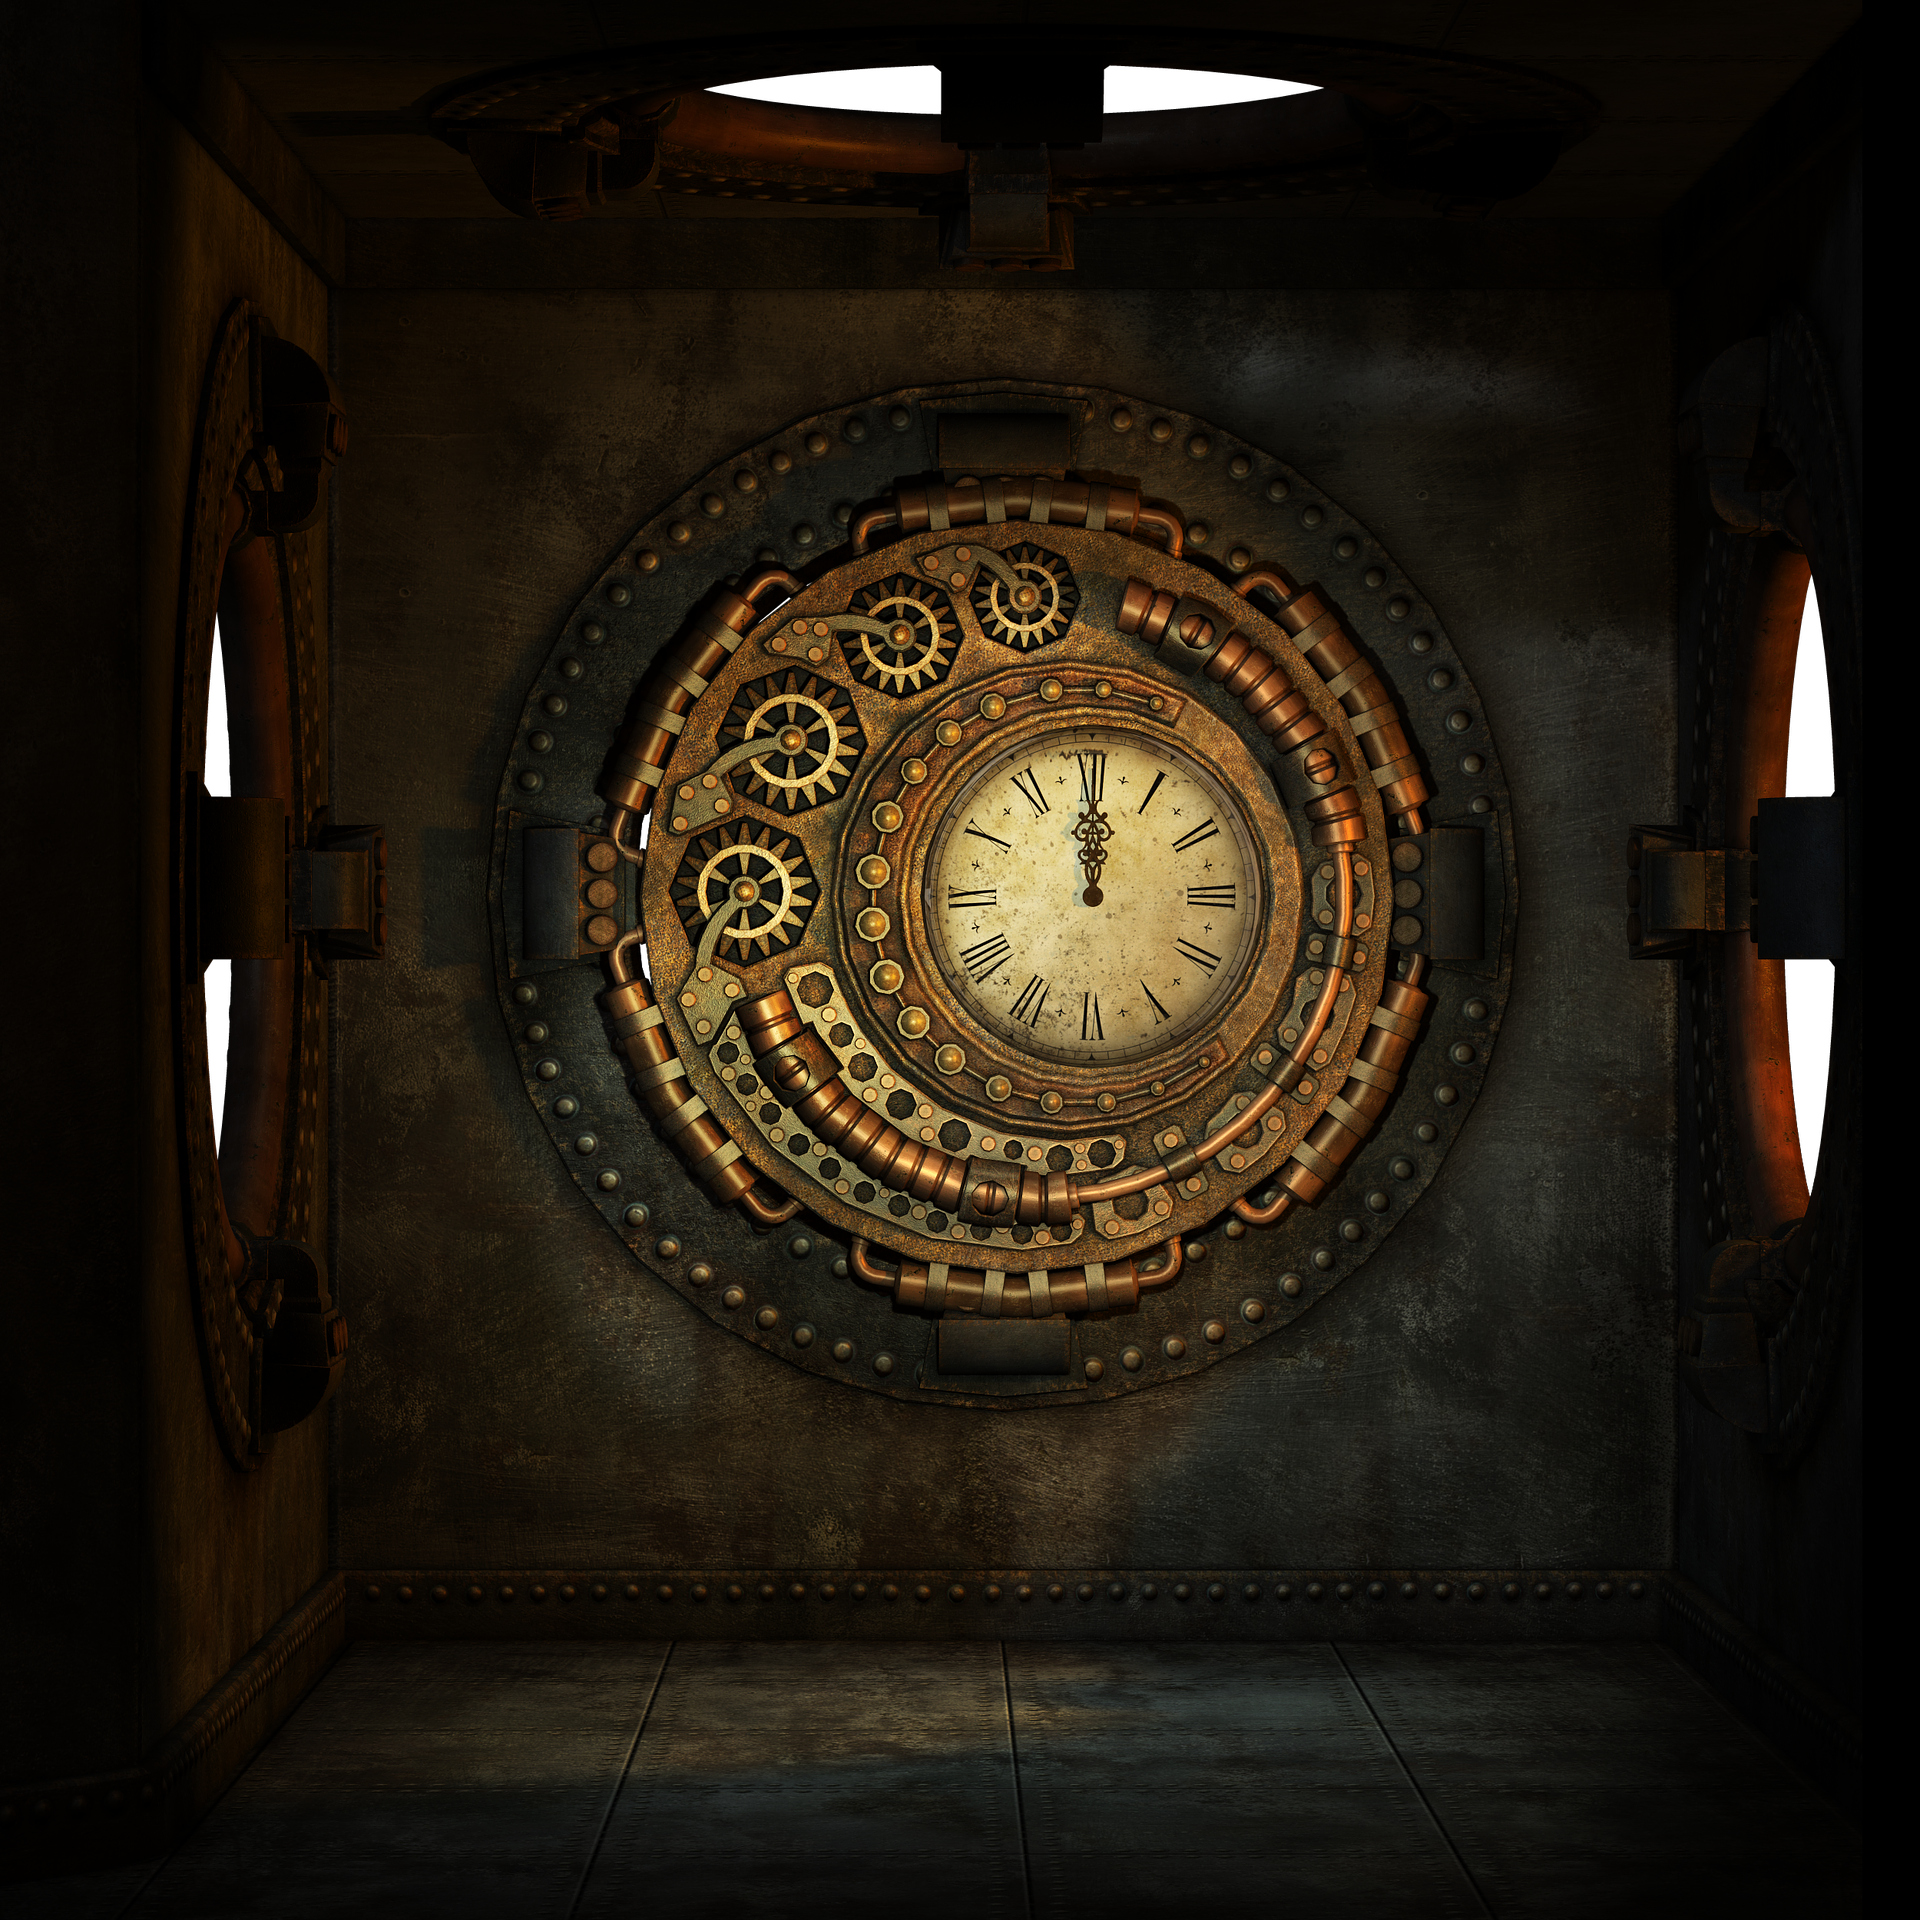 steampunk-1636156_1920.png